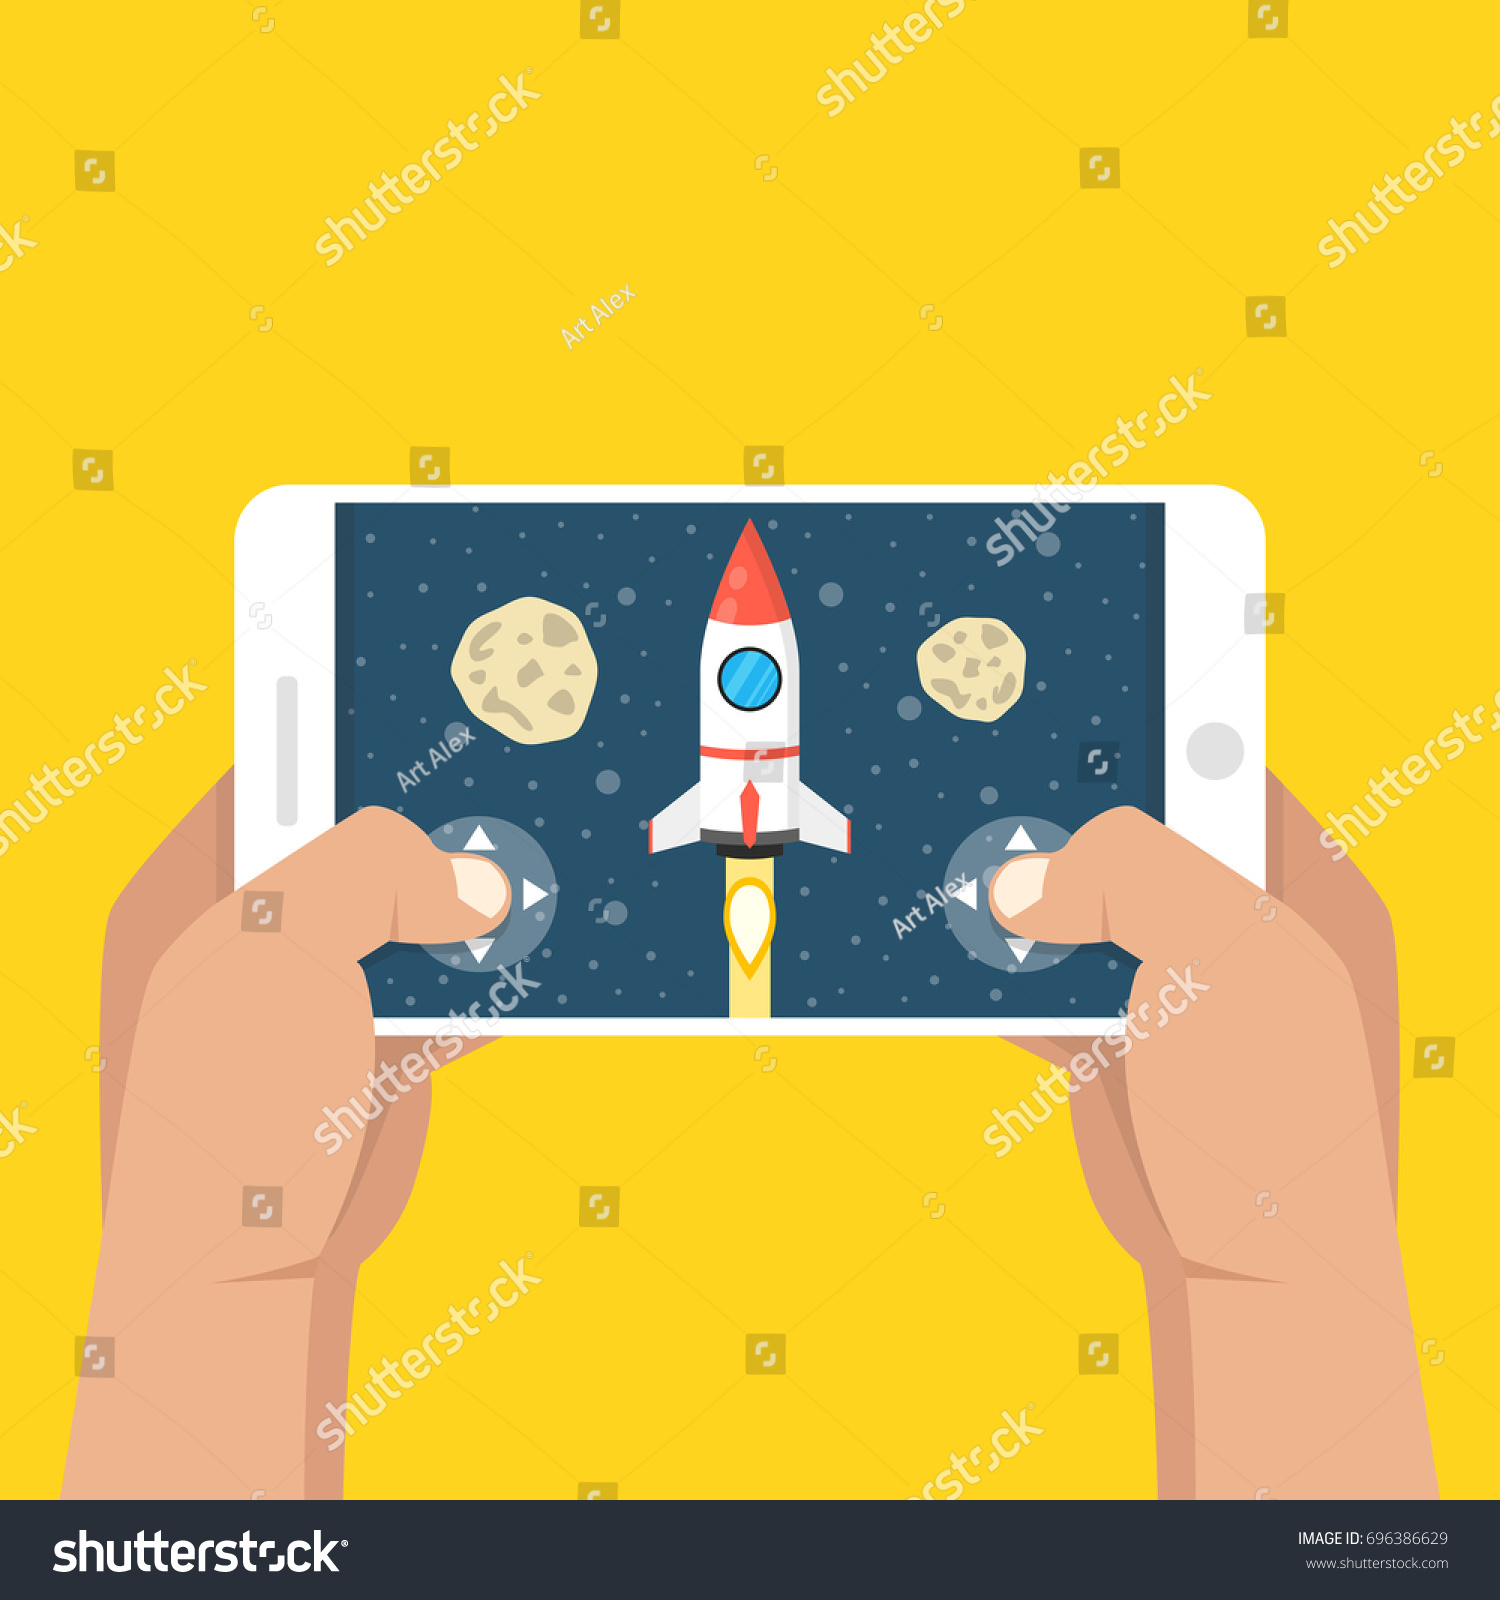 Man Holding Smartphone Playing Rocket Game Stock Vector